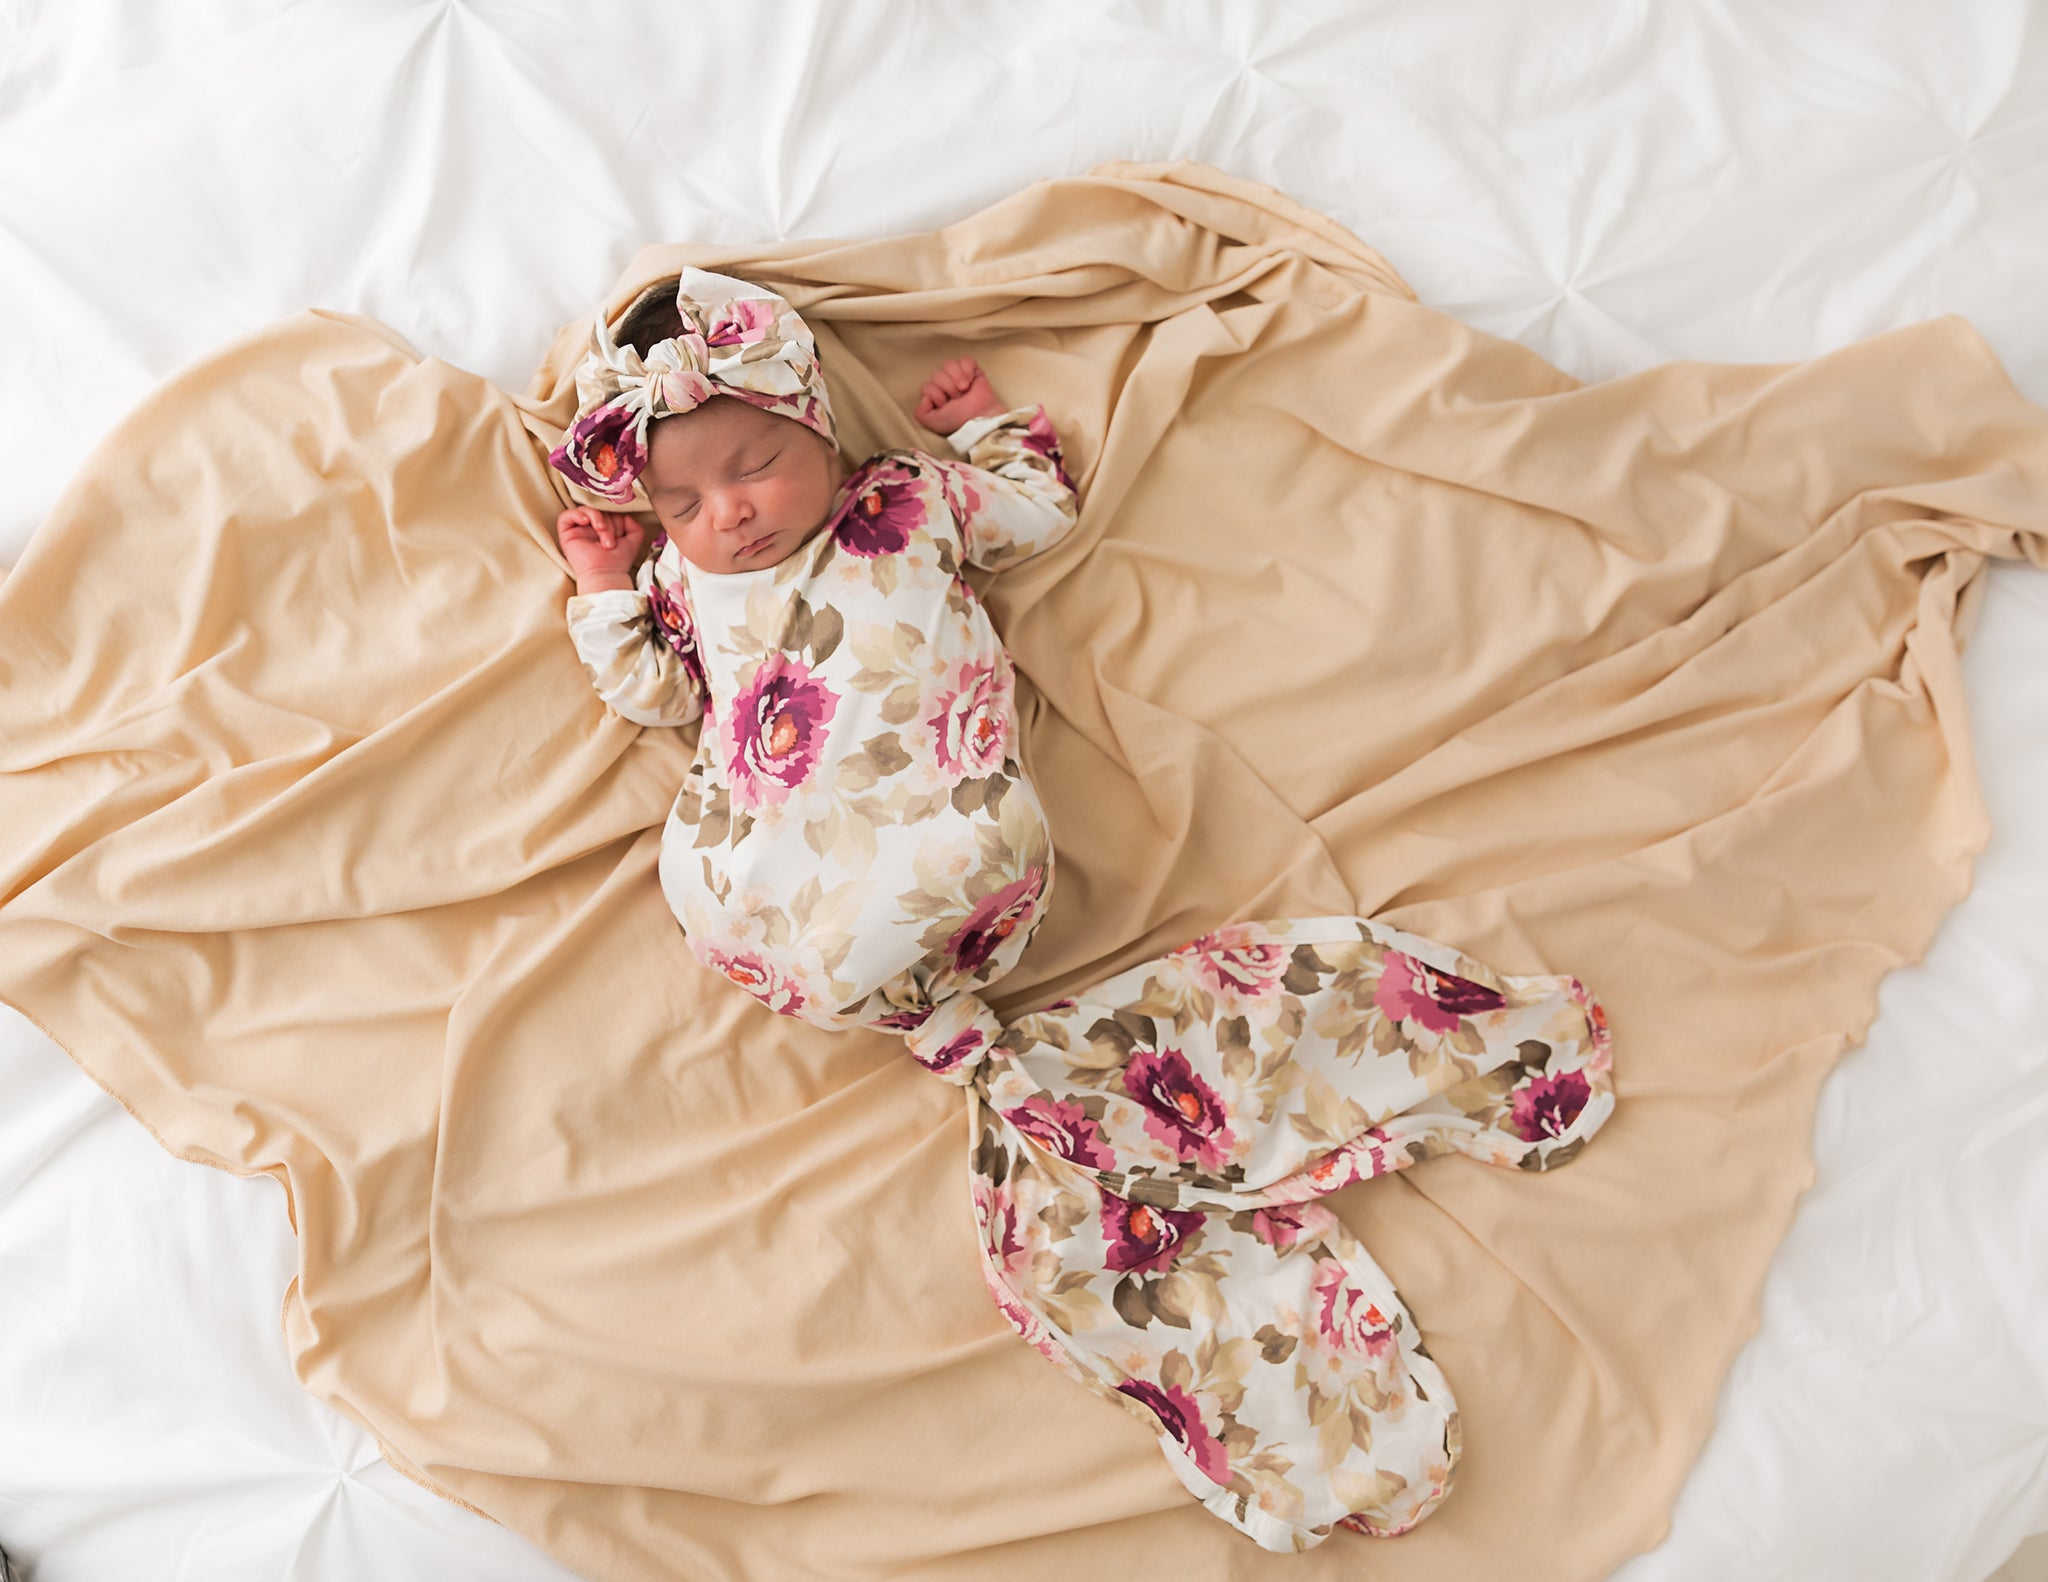 sleeping baby in swaddle blanket set